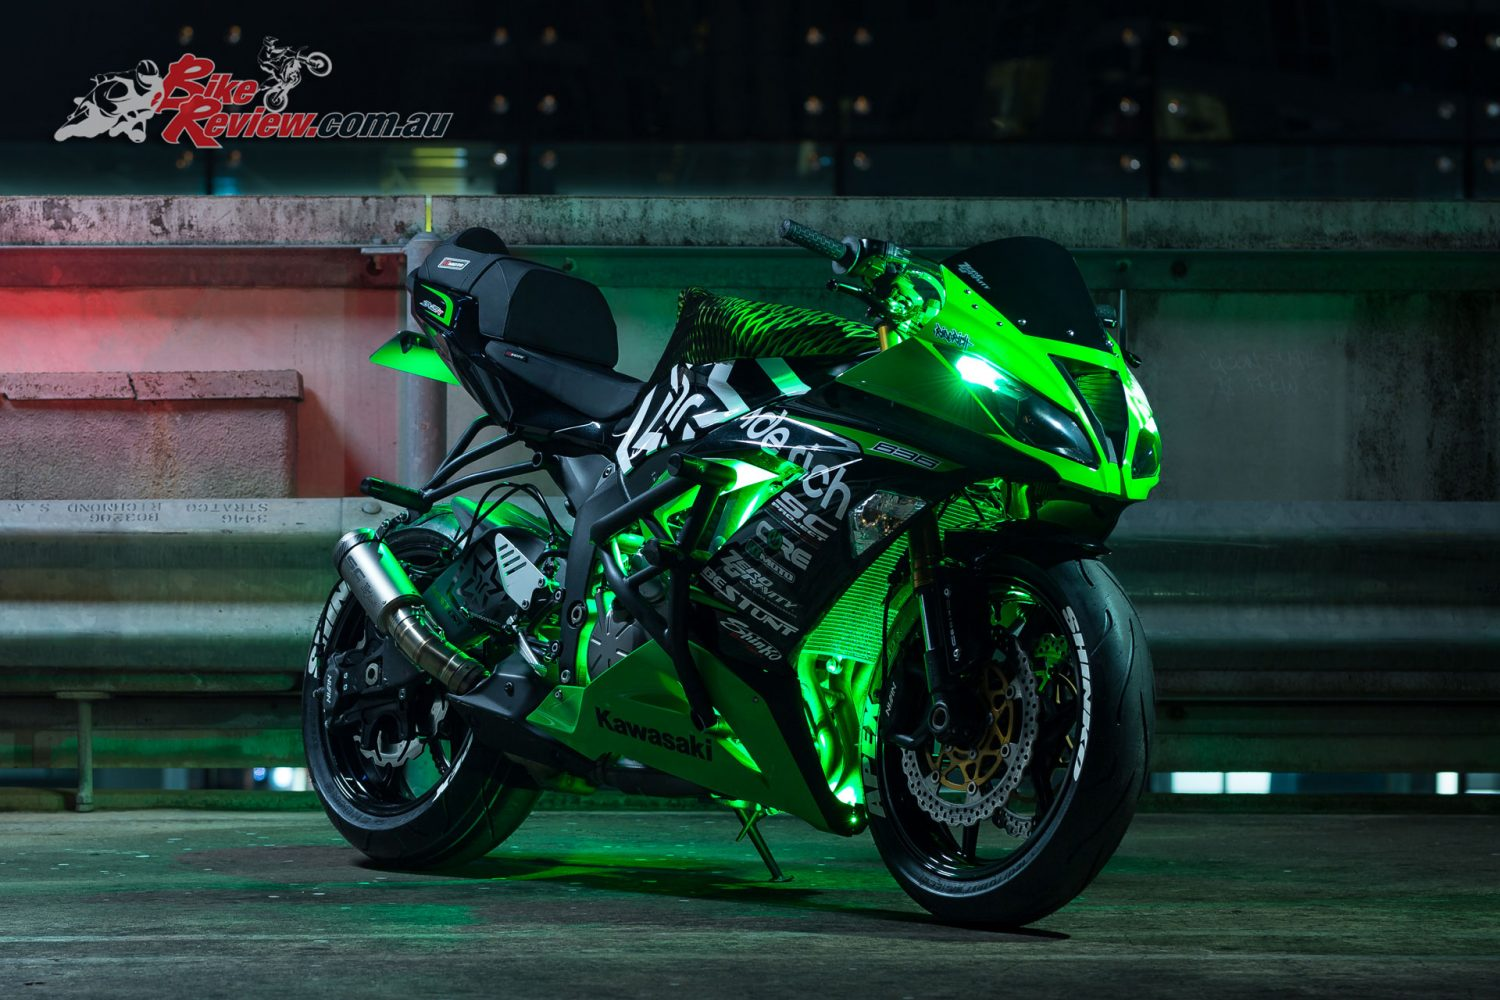 Kawasaki Stunt Rider Jb Unveils Ninja Zx 6r Stunt Bike on new harley accessories